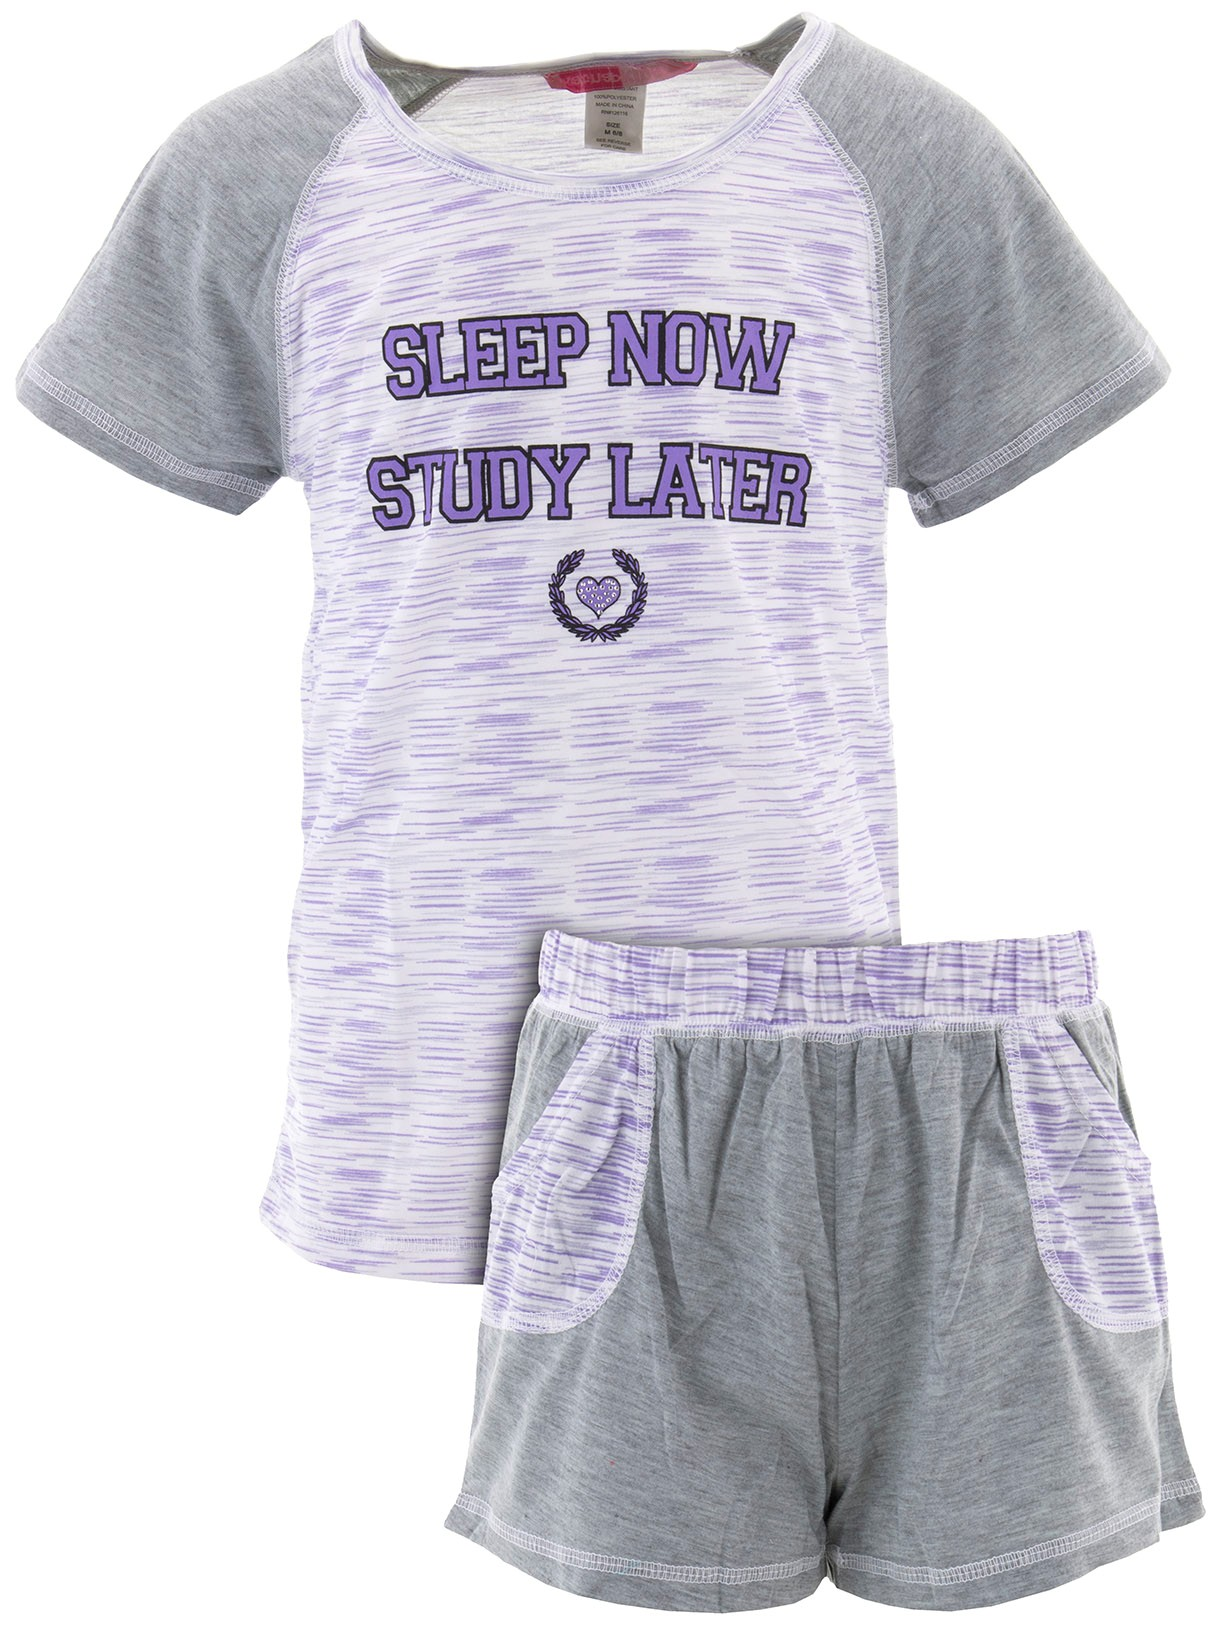 Katnap Kids Big Girls' Study Later Lavender Short Pajamas